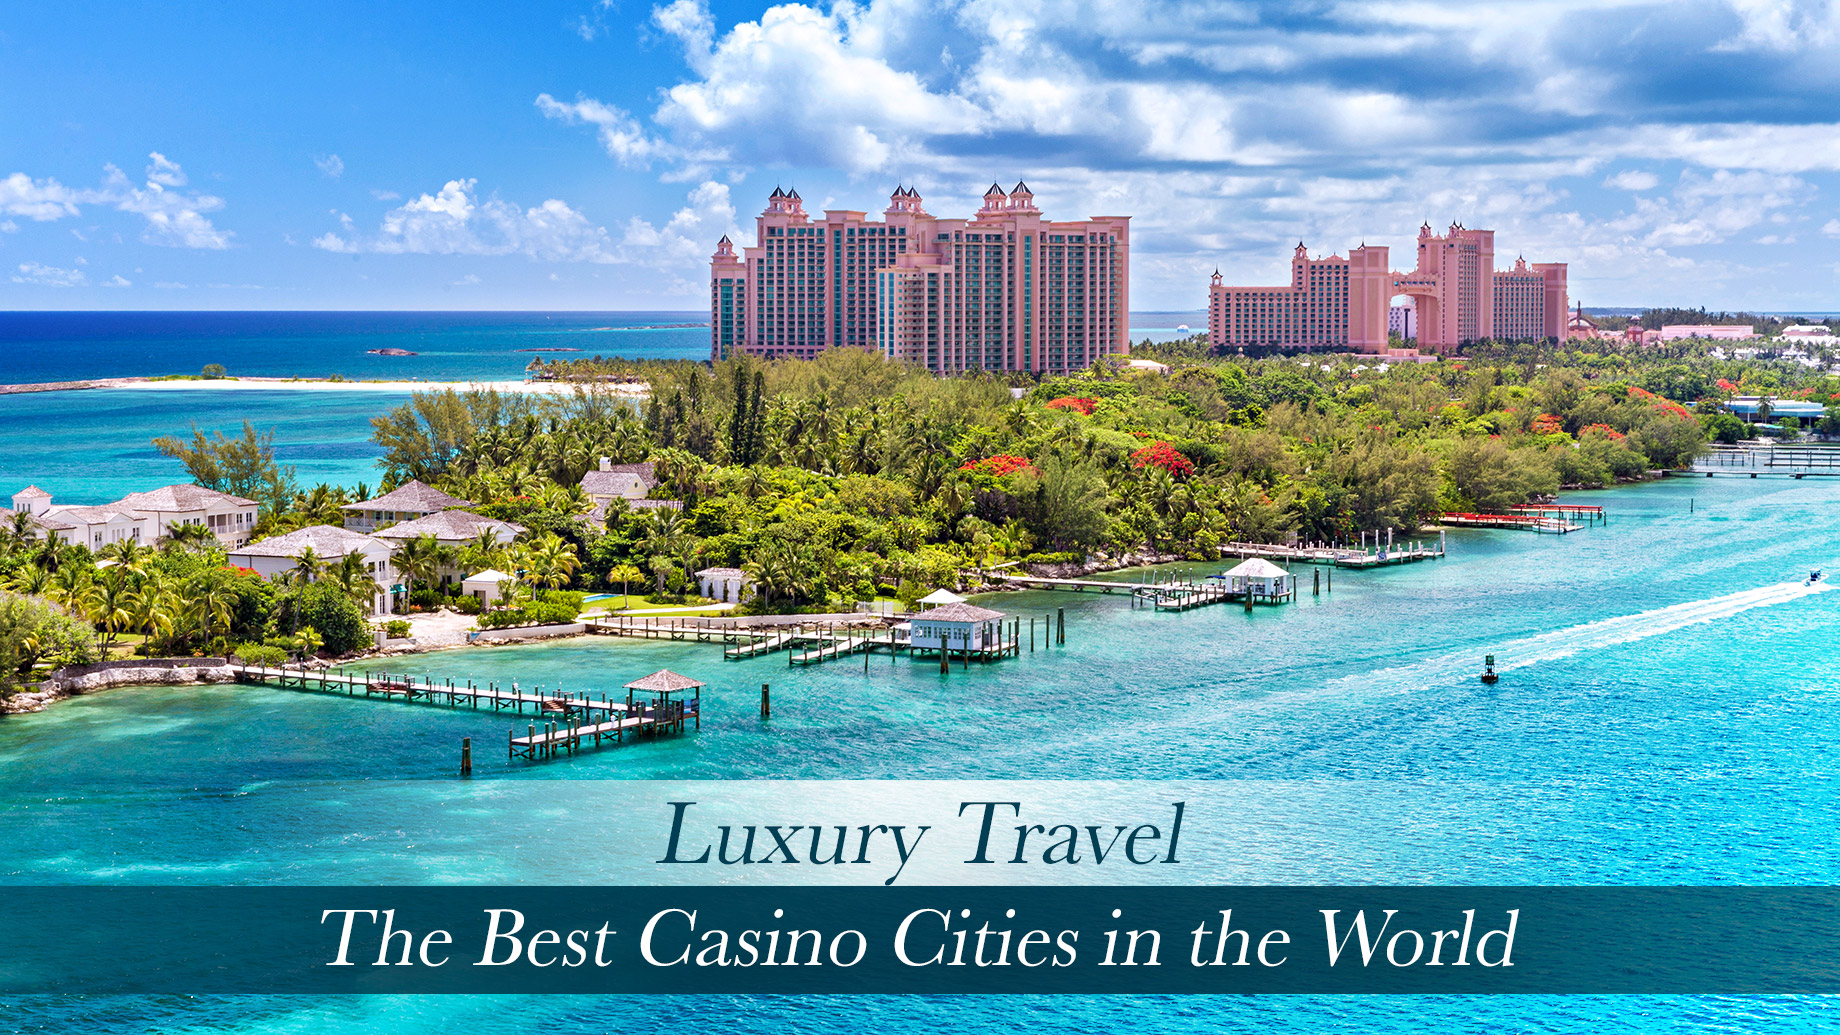 Luxury Travel - The Best Casino Cities in the World